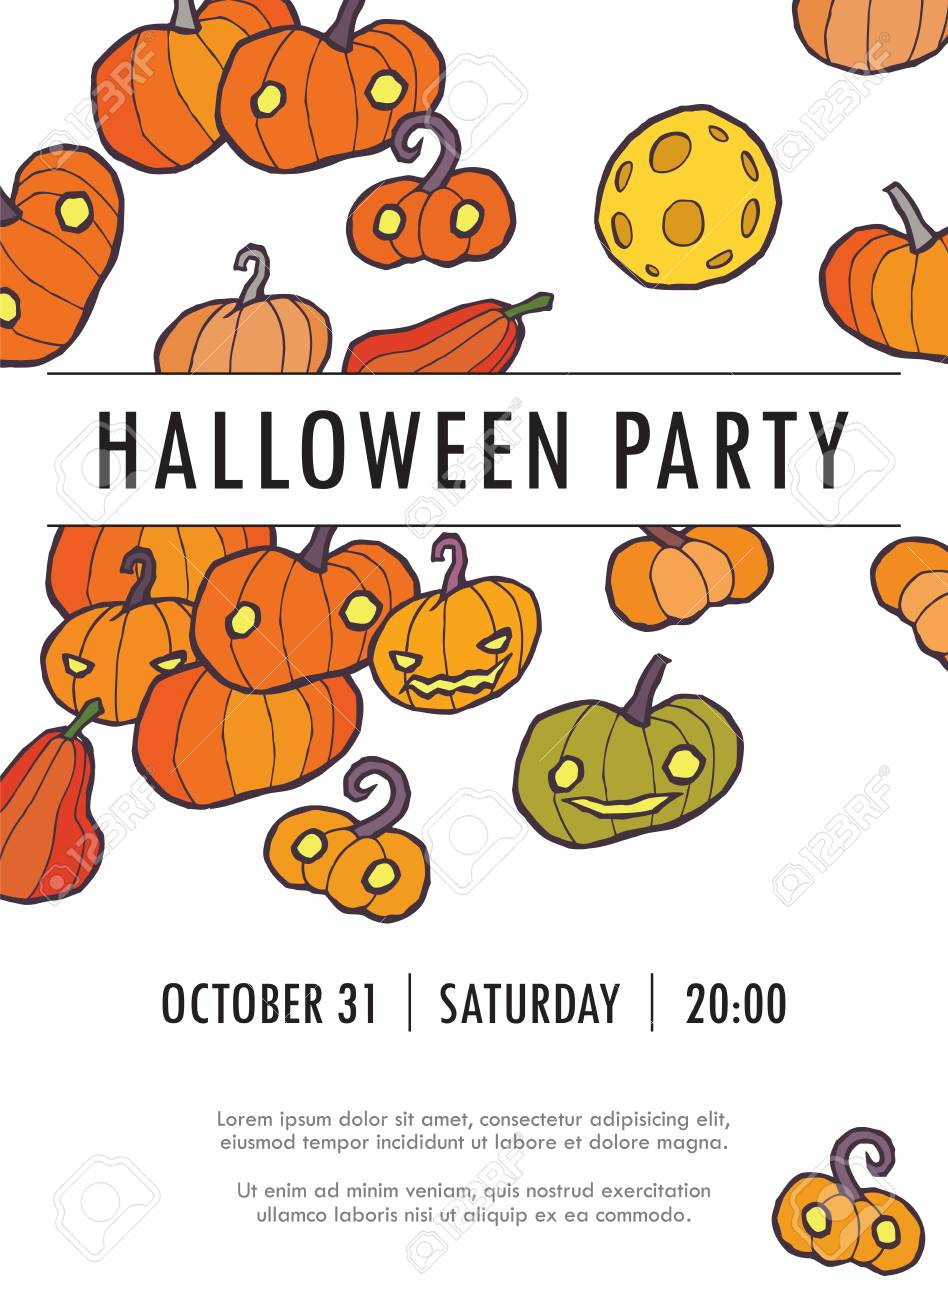 Halloween Vector Invitation Template With Pumpkin You Can Use It For Invitations Flyers